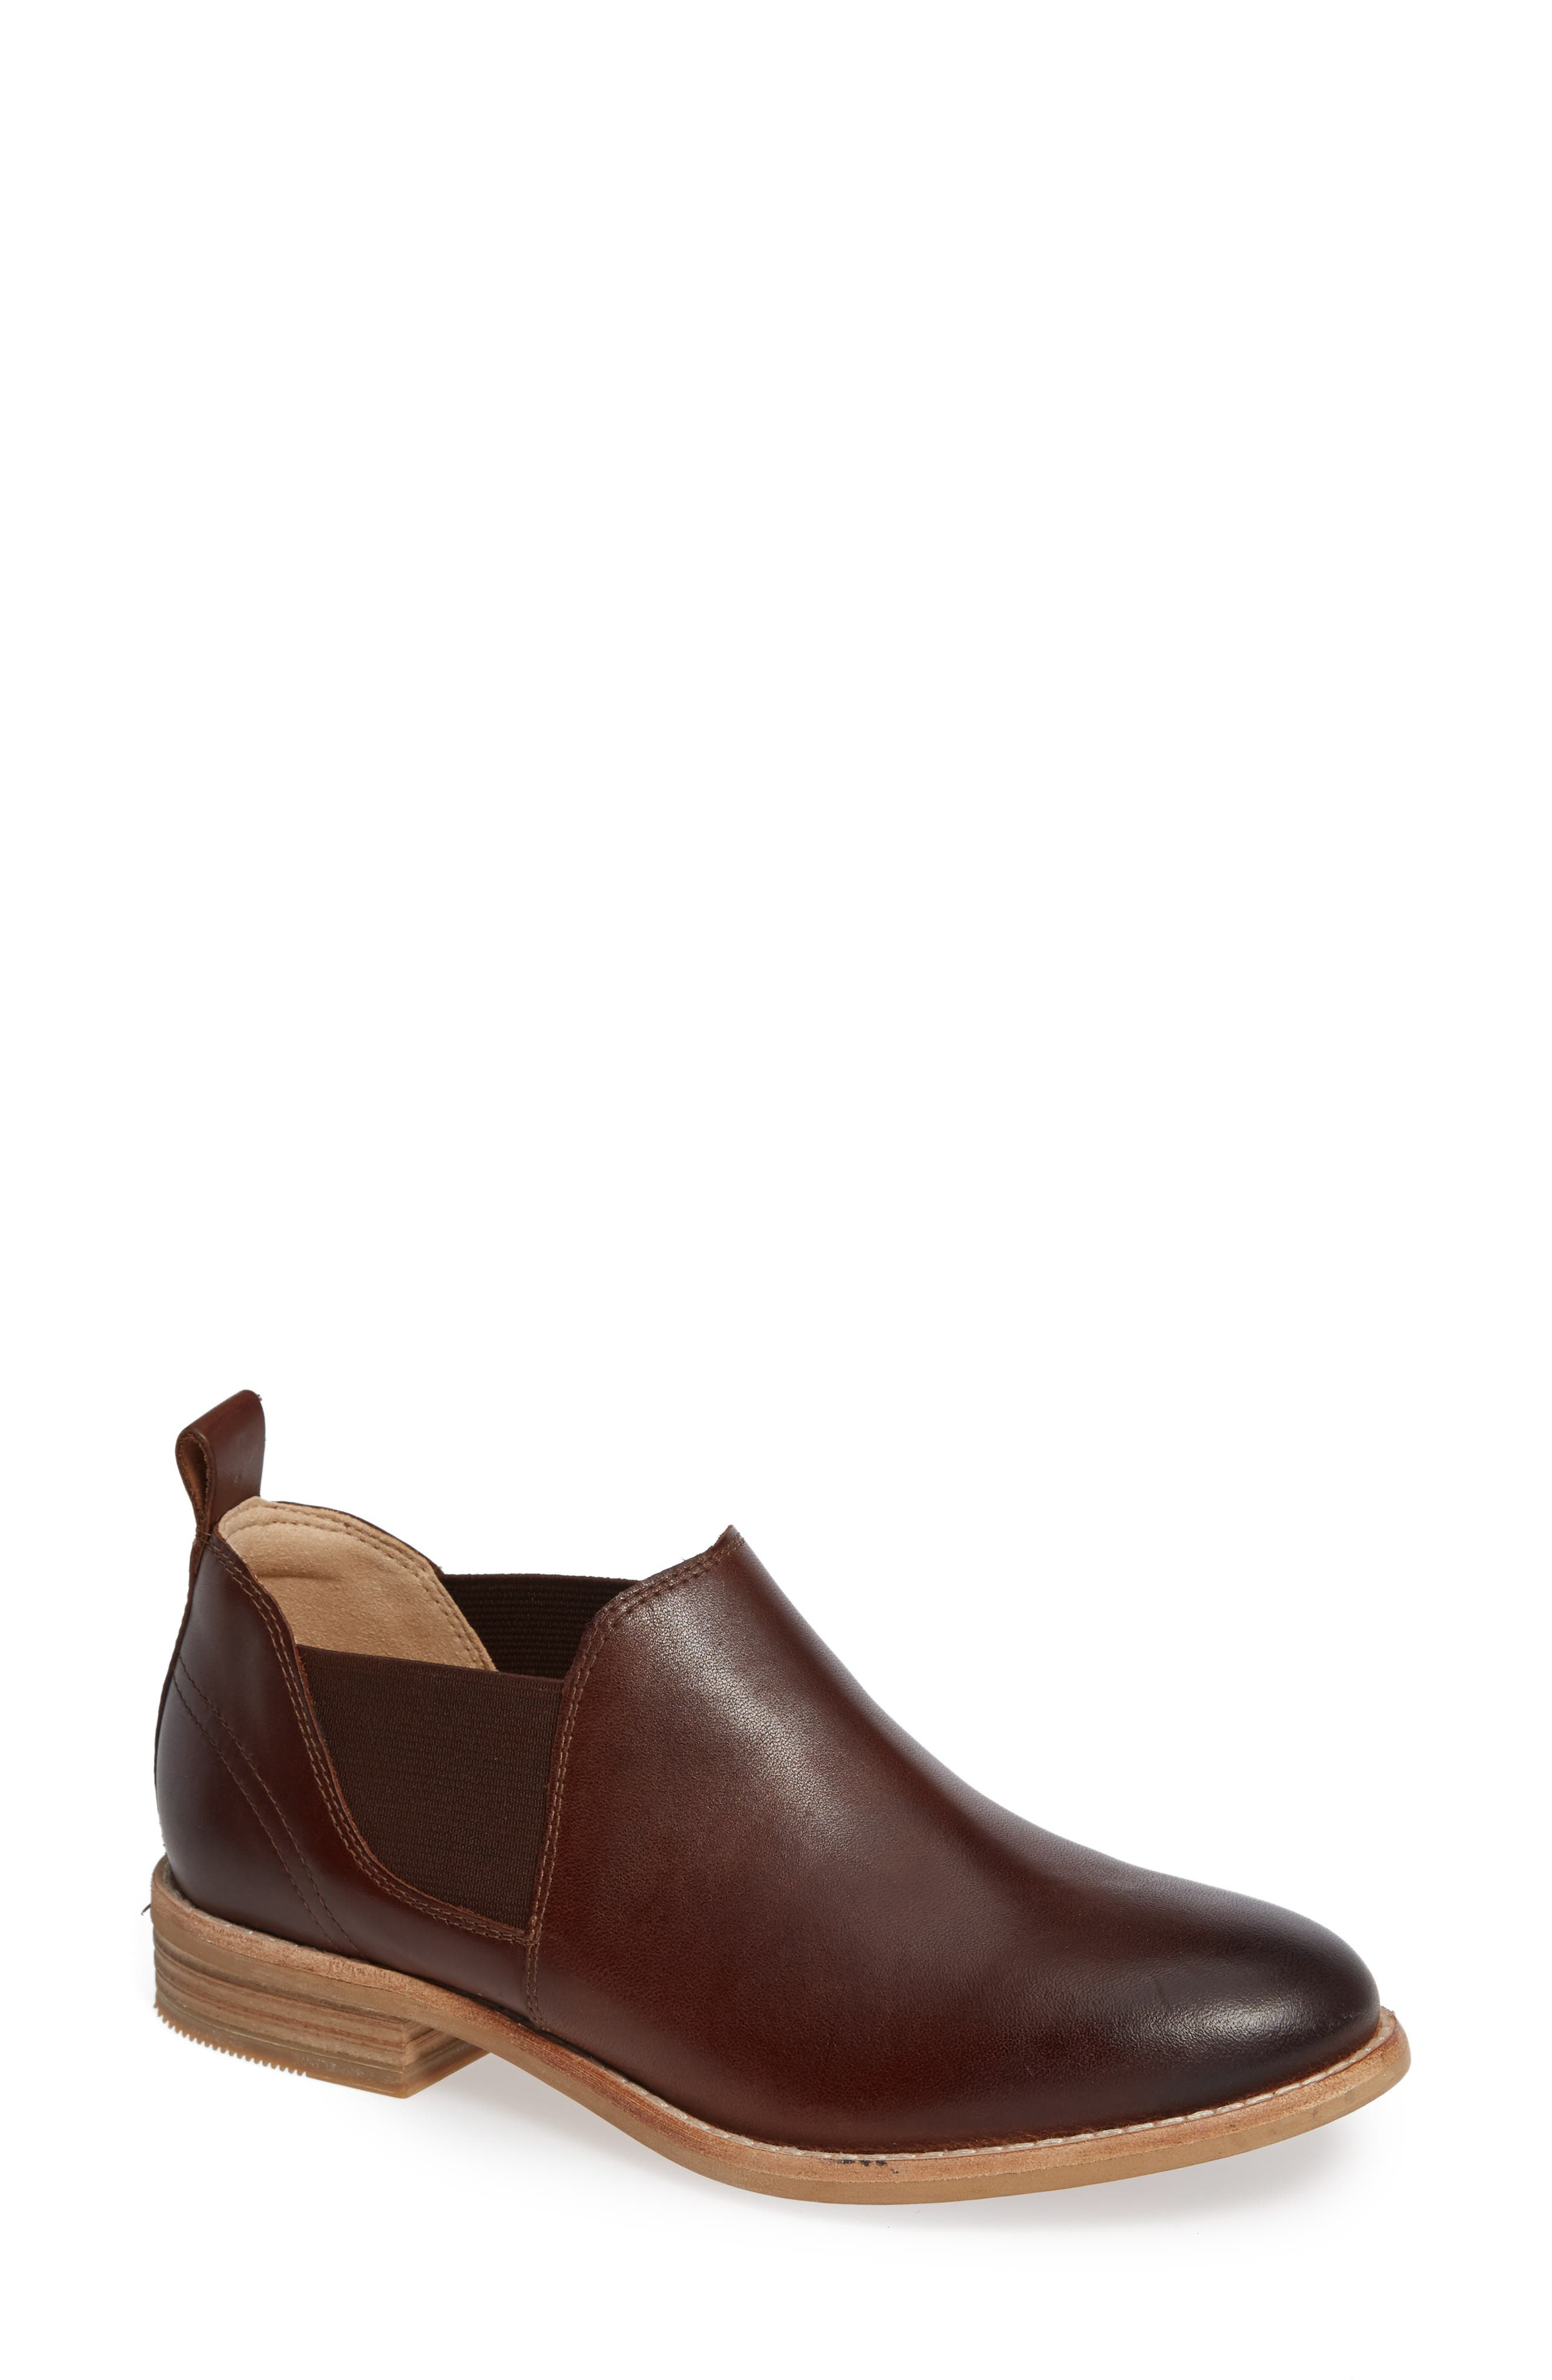 CLARKS<SUP>®</SUP> Edenvale Page Bootie, Main, color, DARK TAN LEATHER